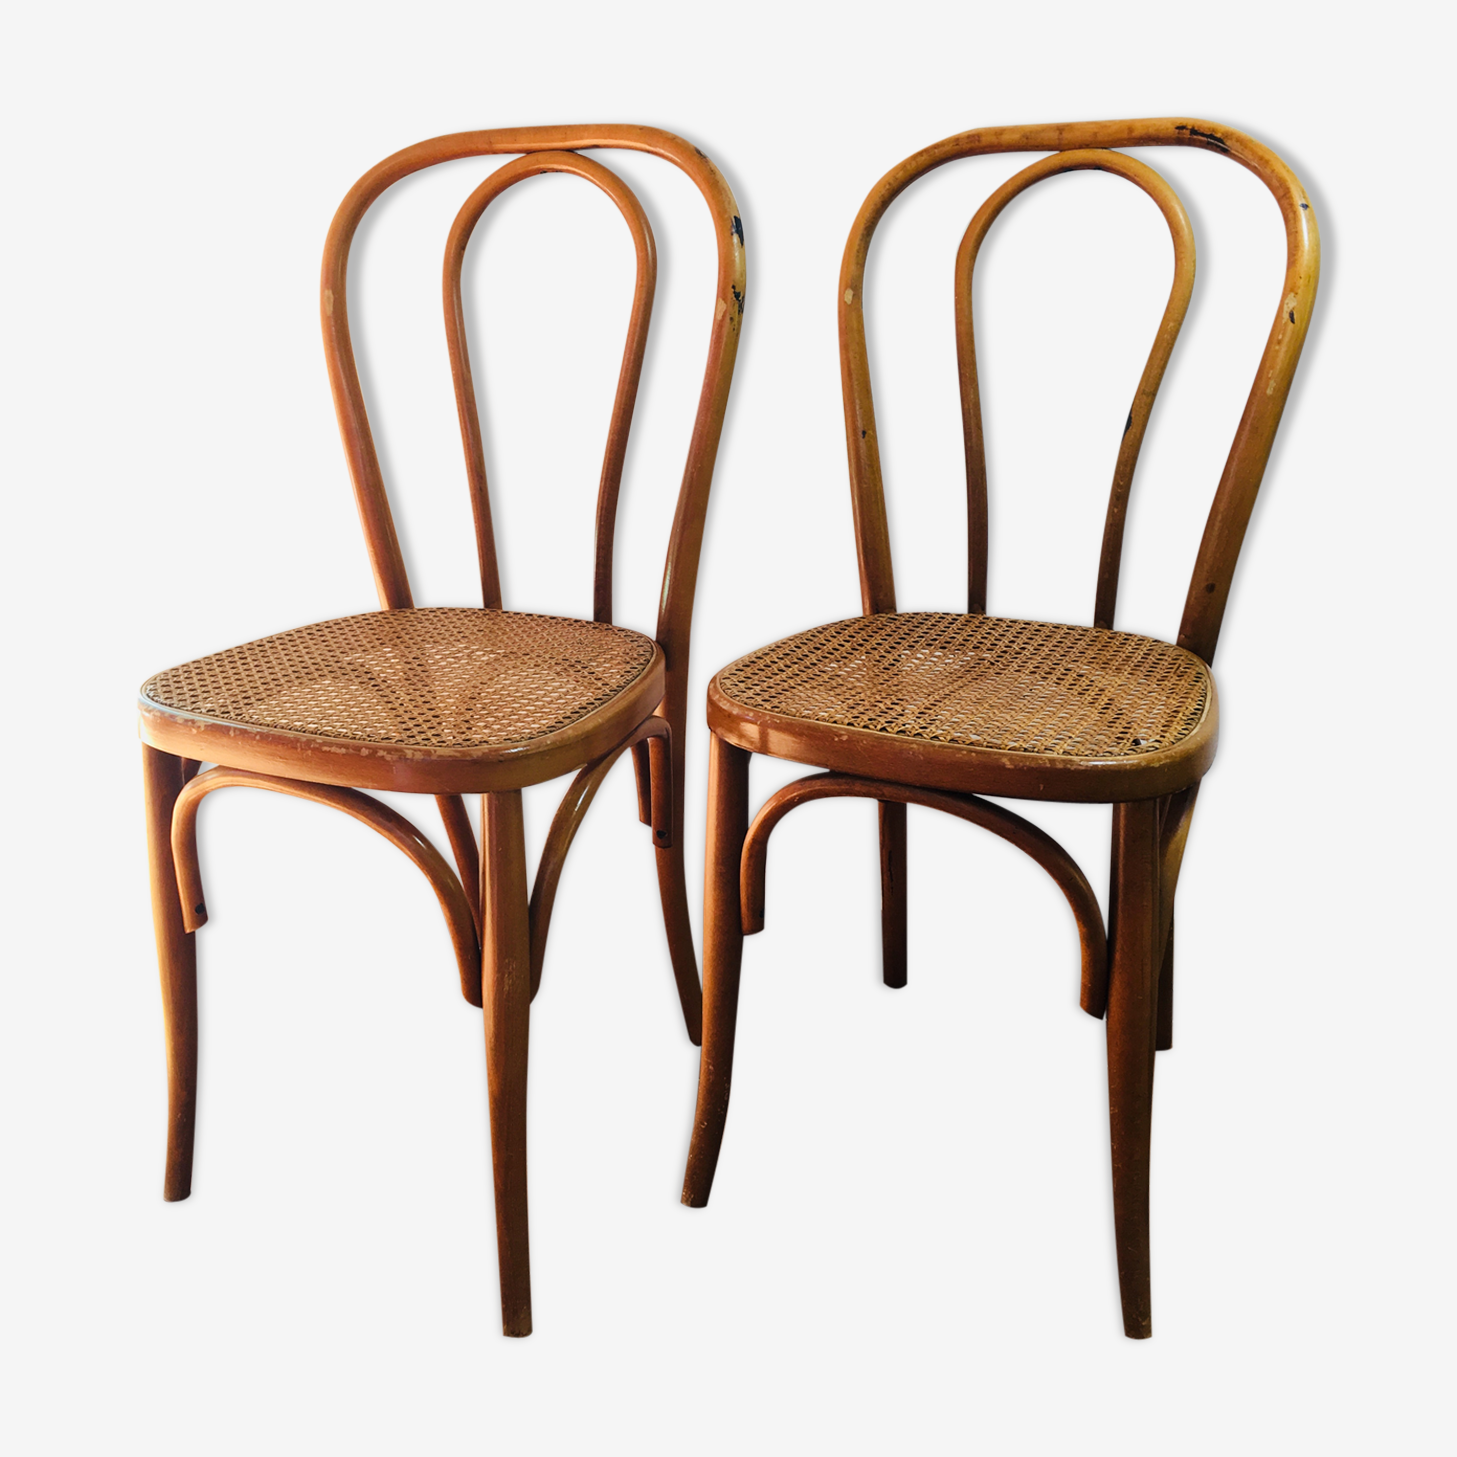 Set of 2 chairs bistro wooden